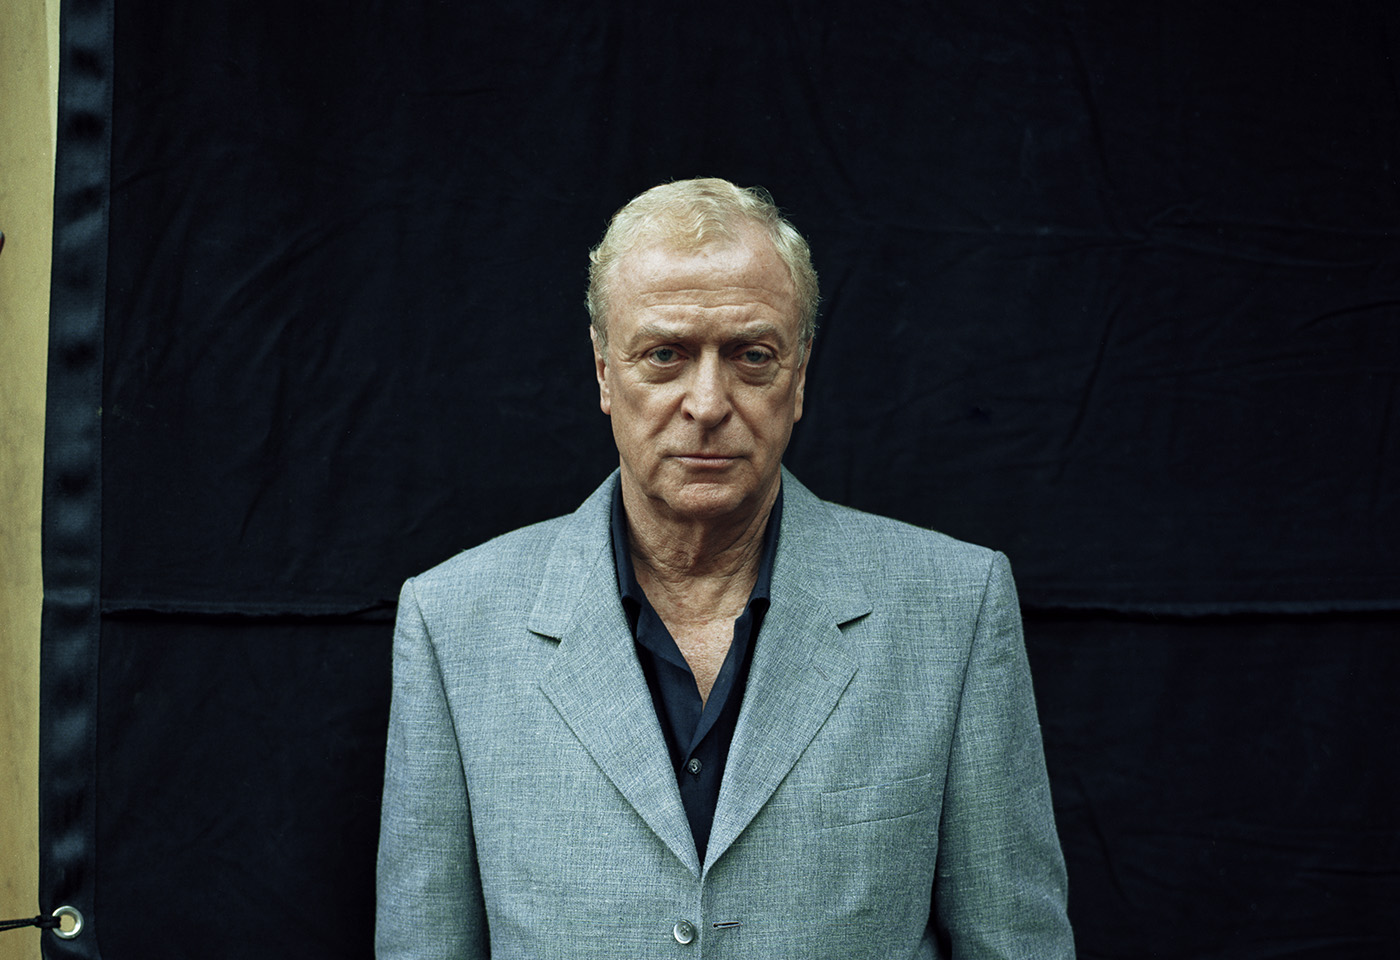 Portrait image of Michael Caine